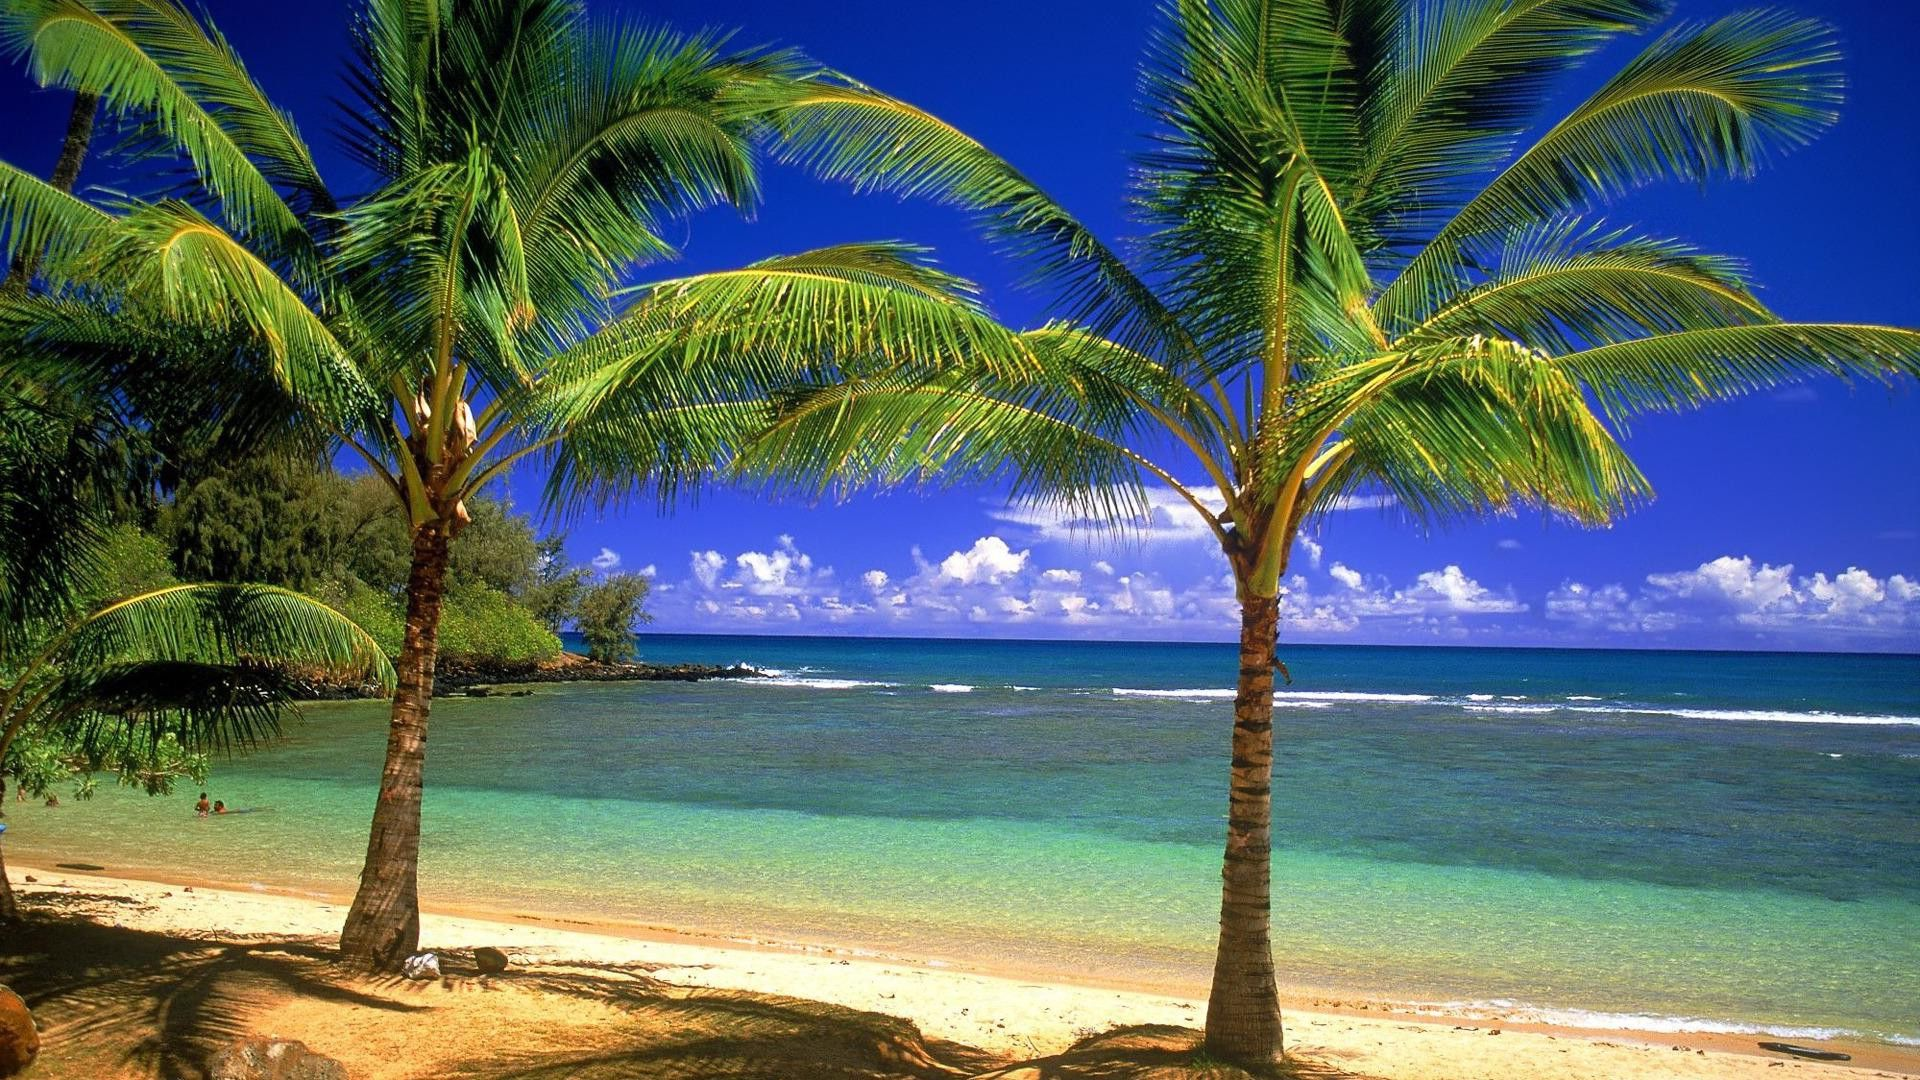 Romantic Beach Wallpapers Pictures HD Wallpaper